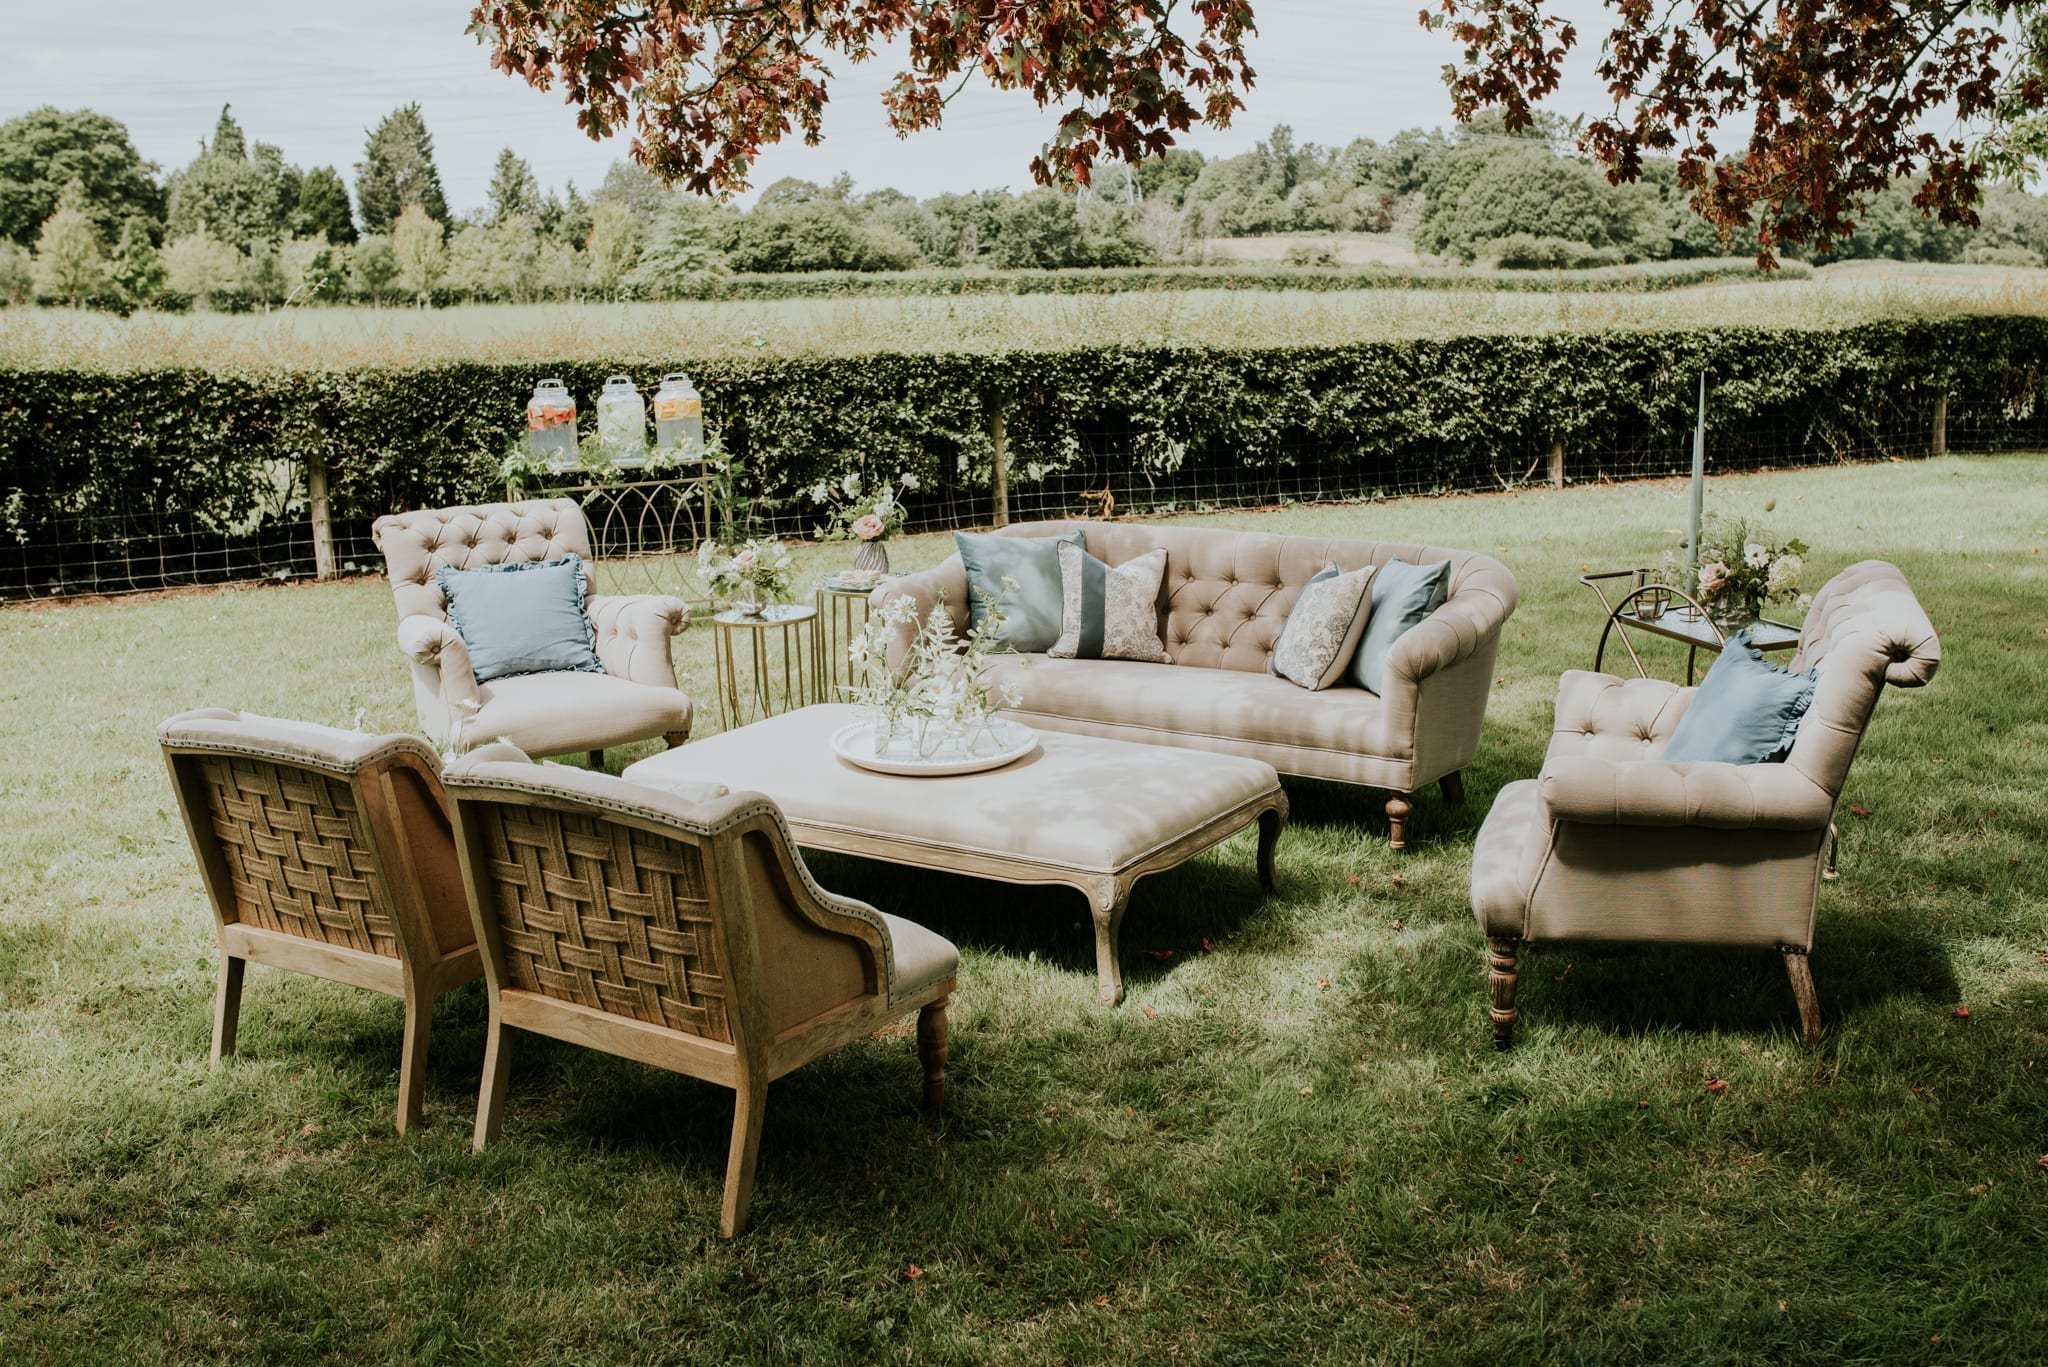 English Country Garden wedding lounge setting